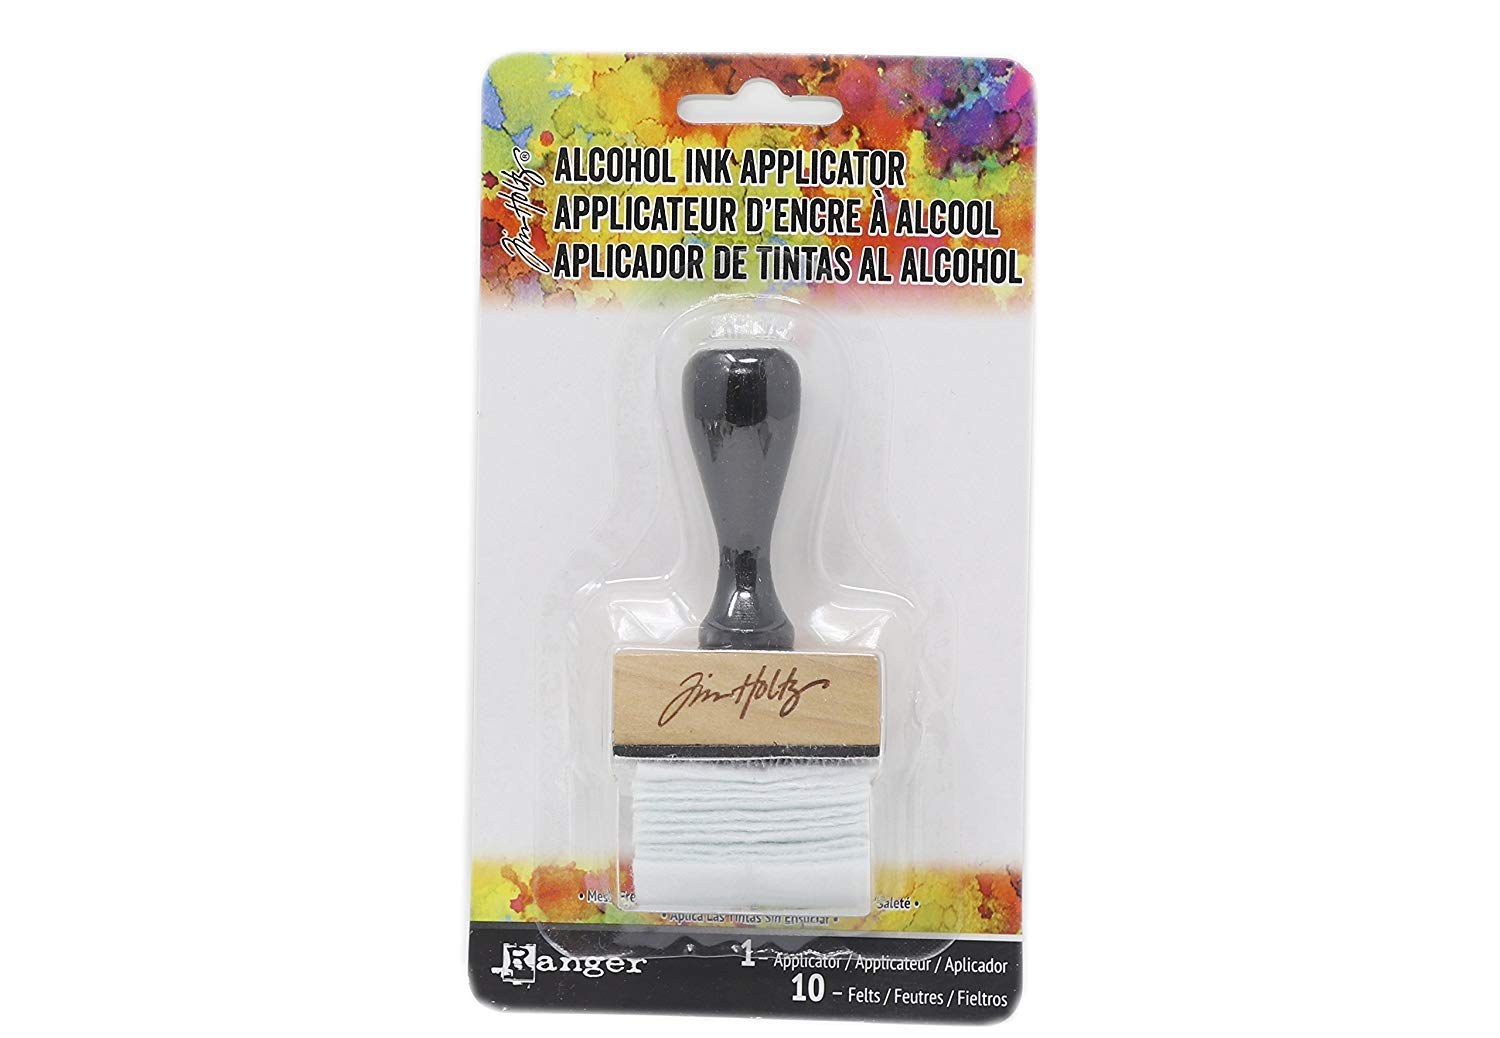 Ink Tool Set Pixiss Blending Tools Set Tim Holtz Alcohol Ink Accessory Bundle 50x Applicator Felt Replacements Translucent Yupo Paper Ink Card Stock Alcohol Ink Palette Alcohol Ink Applicator